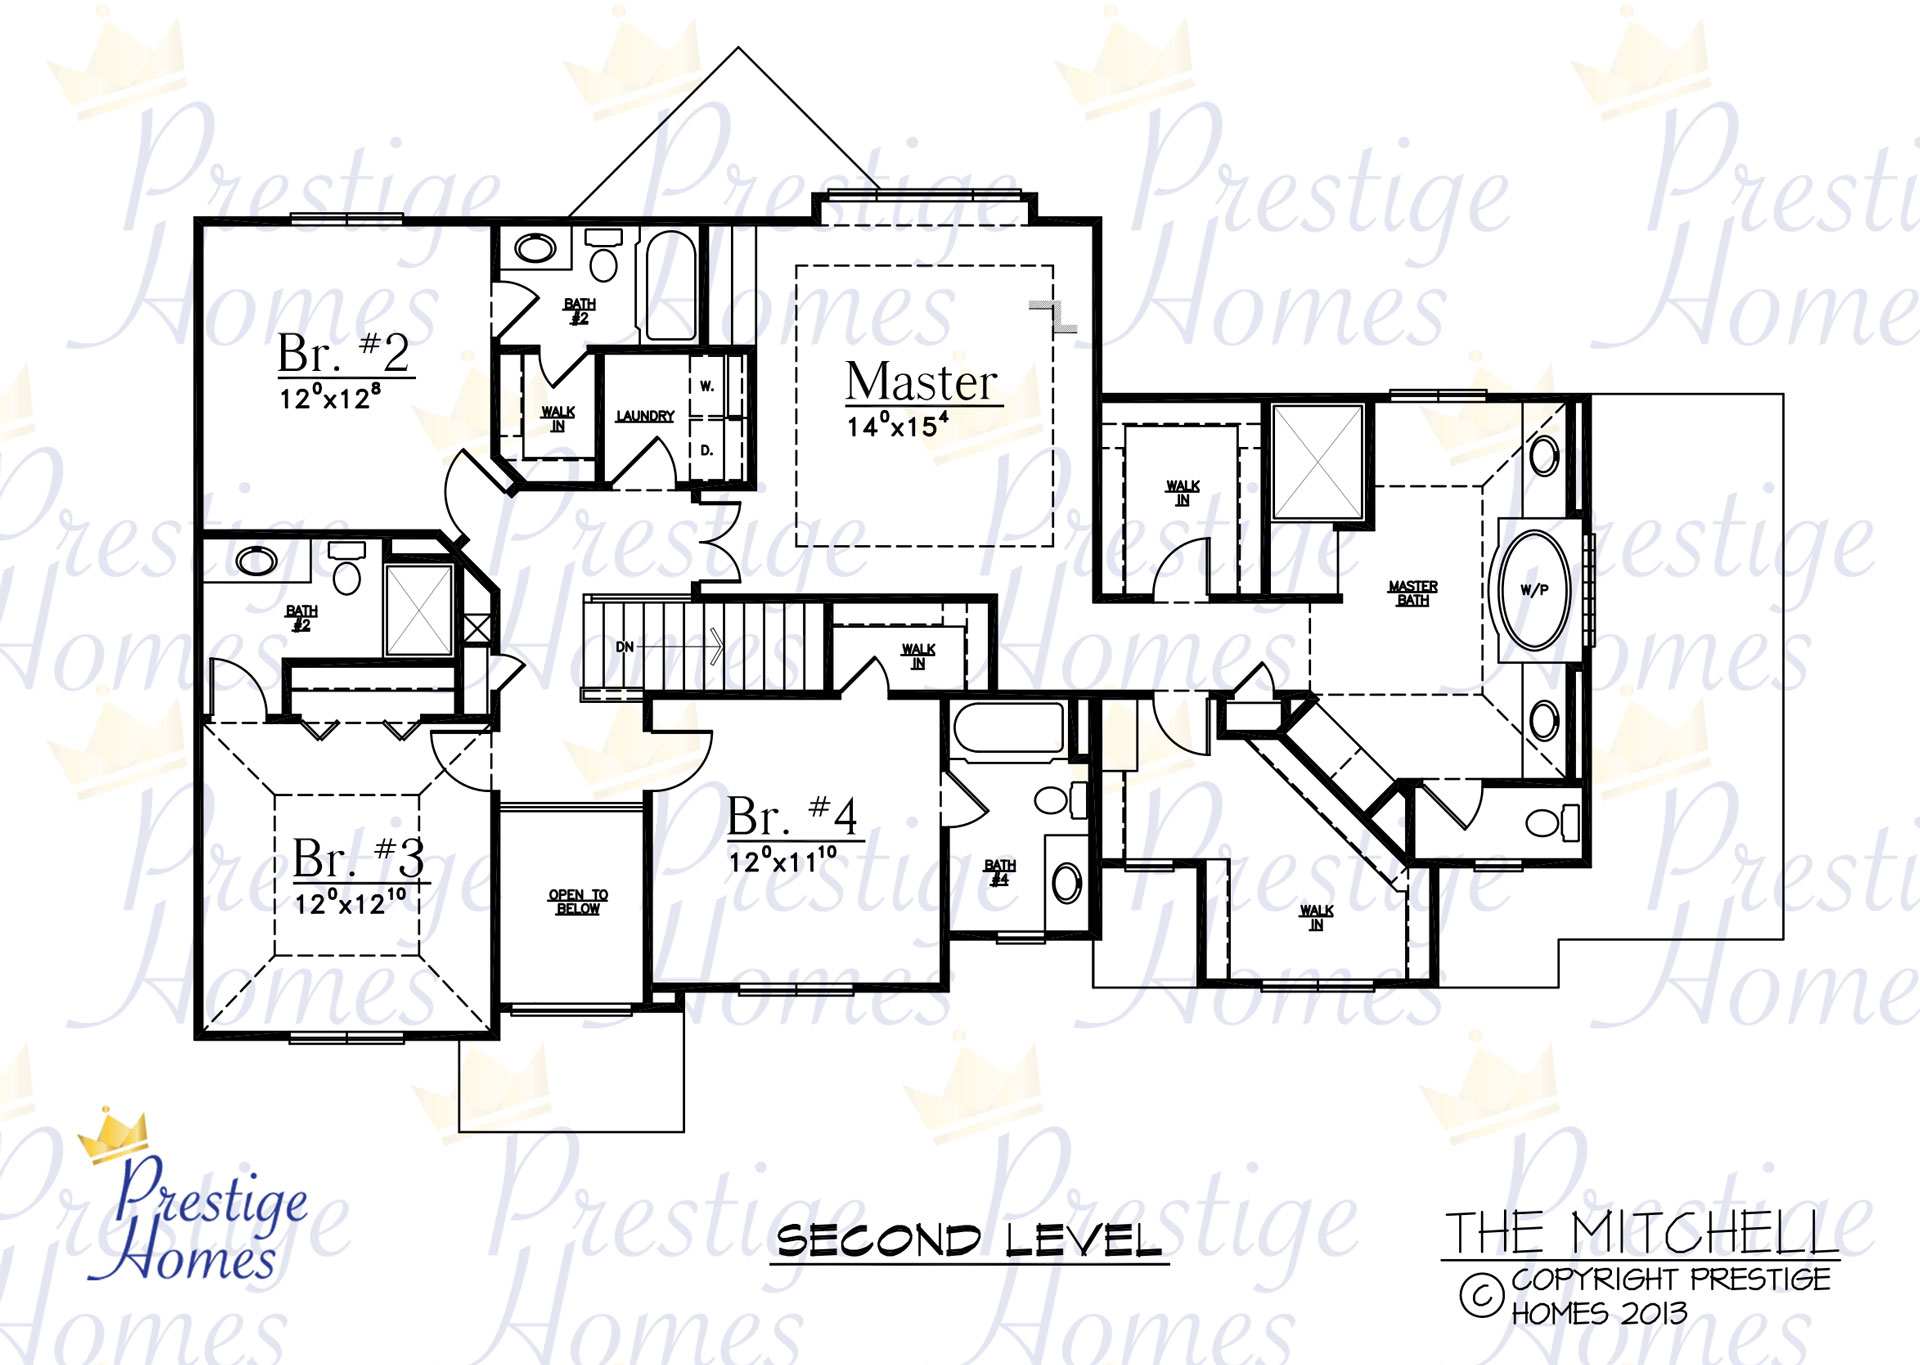 Prestige Homes - Floor Plan - Mitchell - Upper